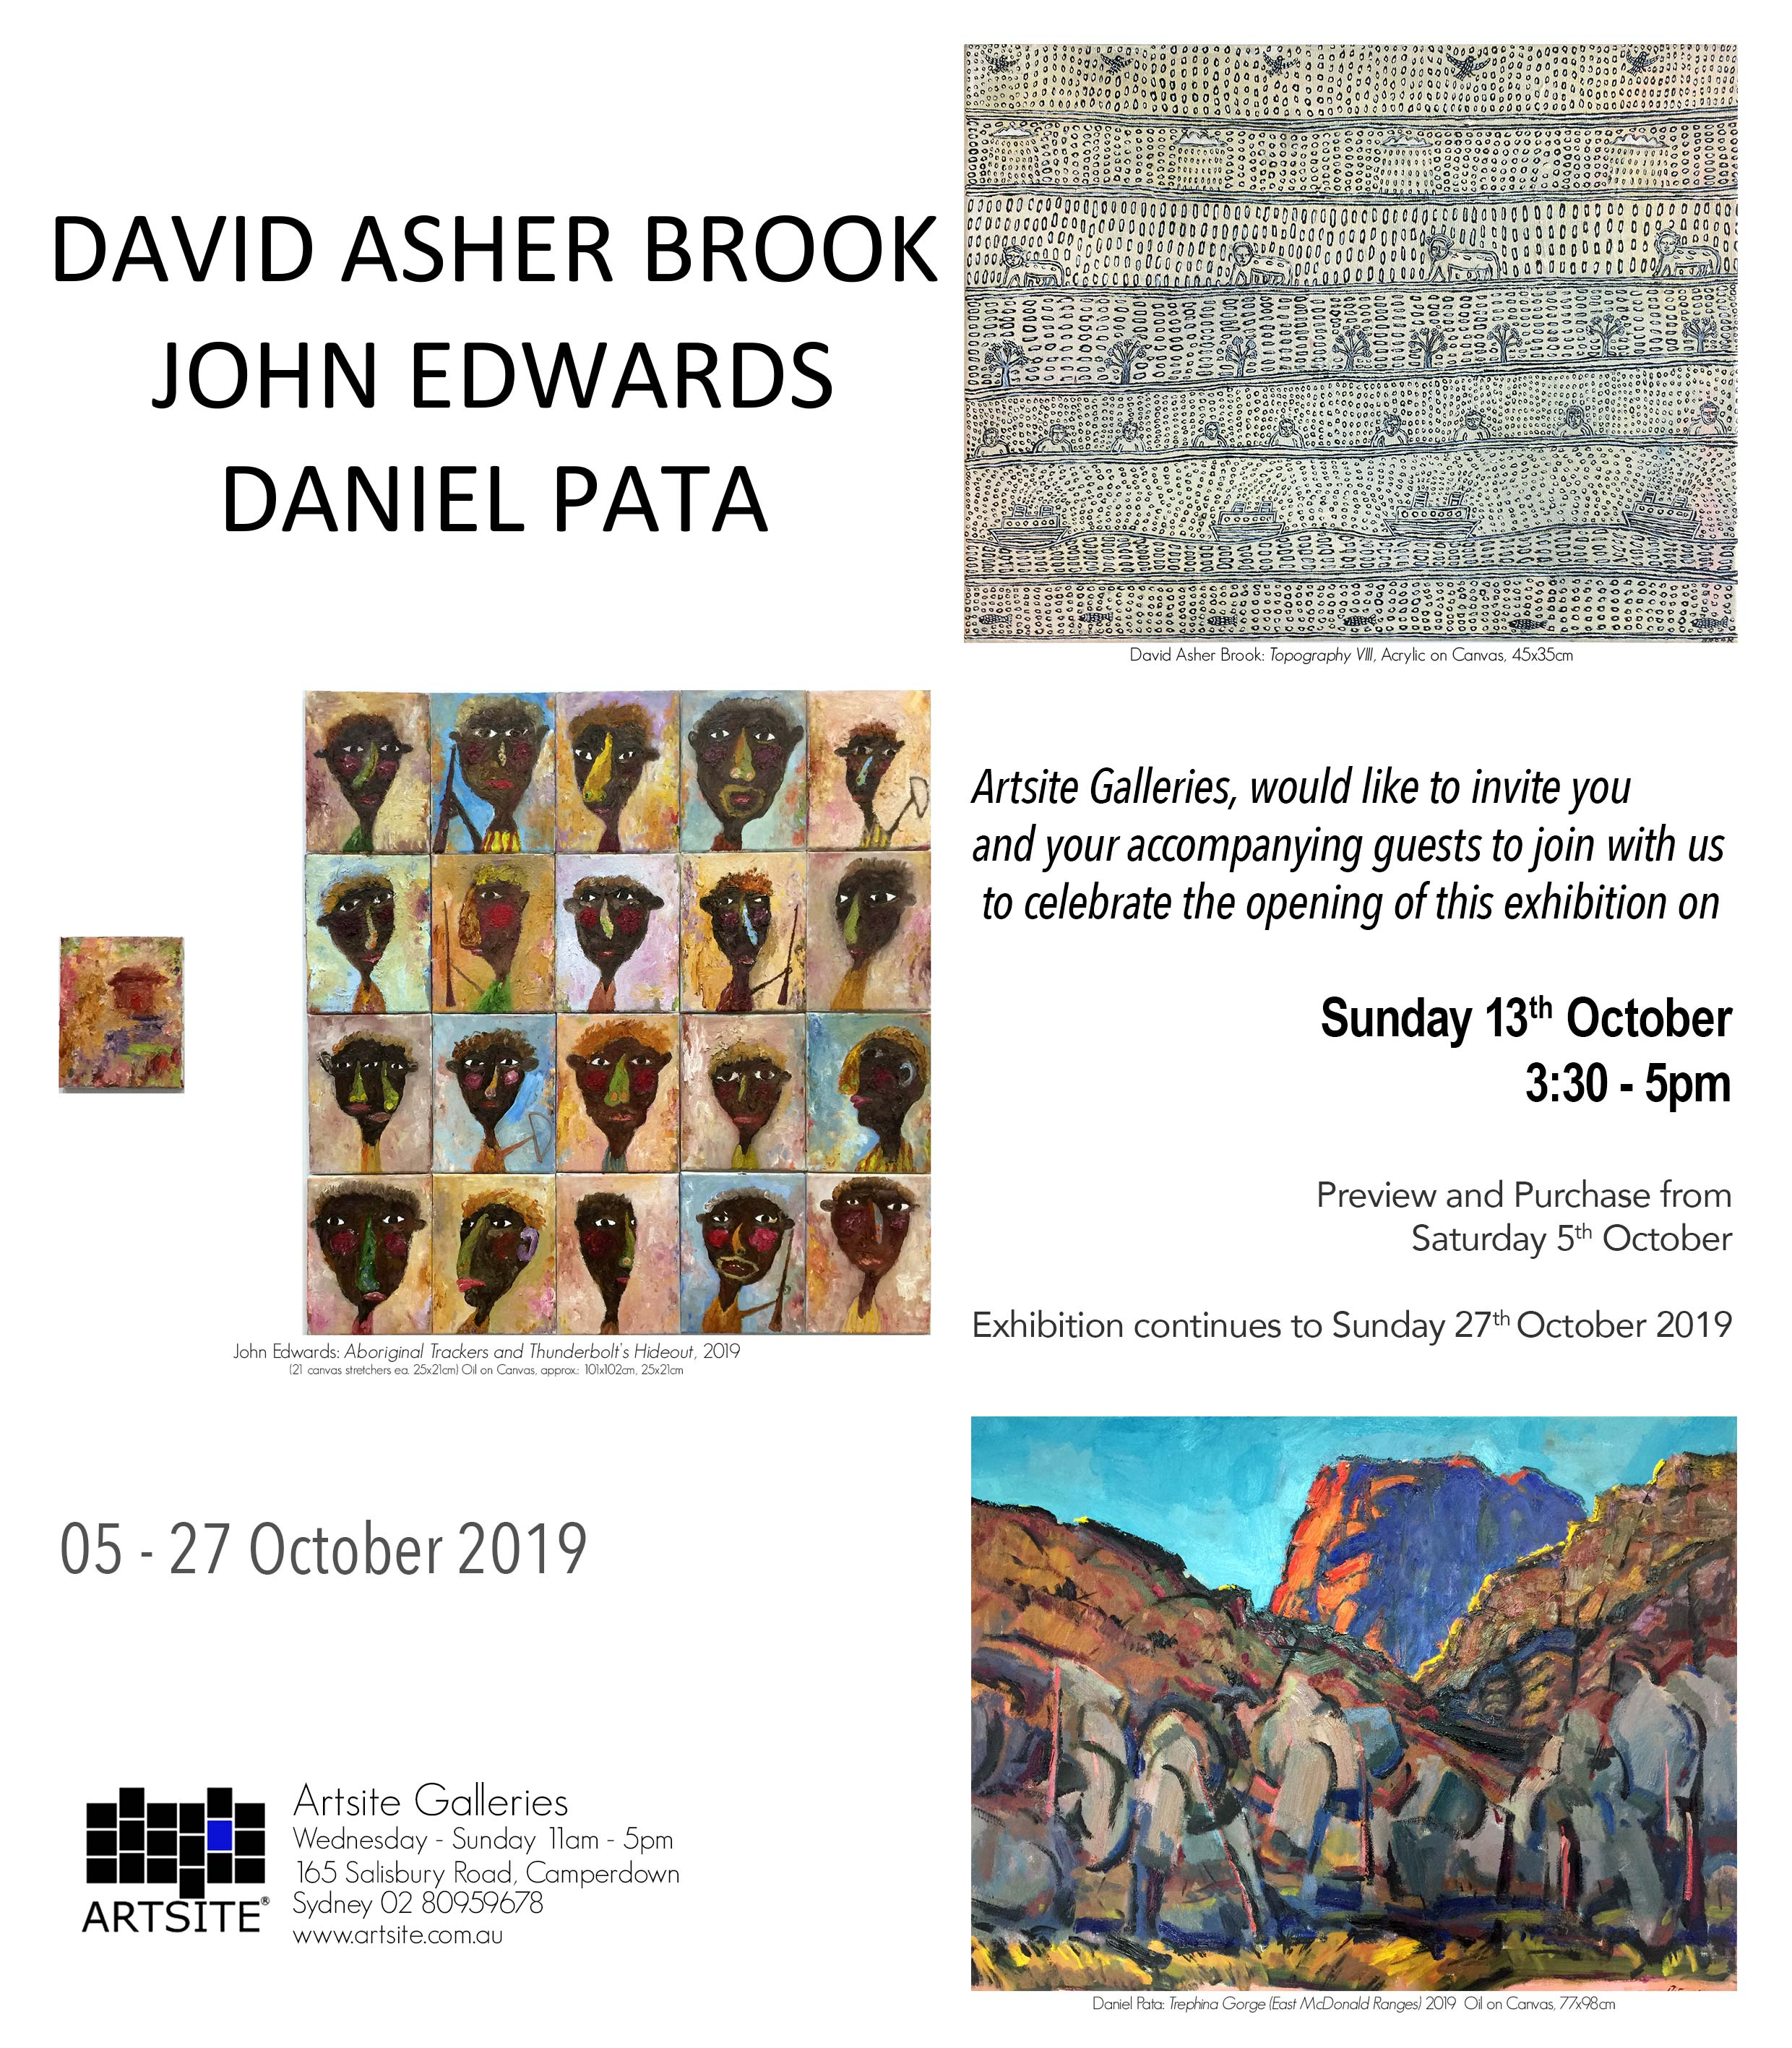 Artsite Gallery Exhibition | DAVID ASHER BROOK | JOHN EDWARDS | DANIEL PATA | 05-27 October 2019 | Opening event 3:30-5pm Sunday 13 October 2019 | All Welcome.